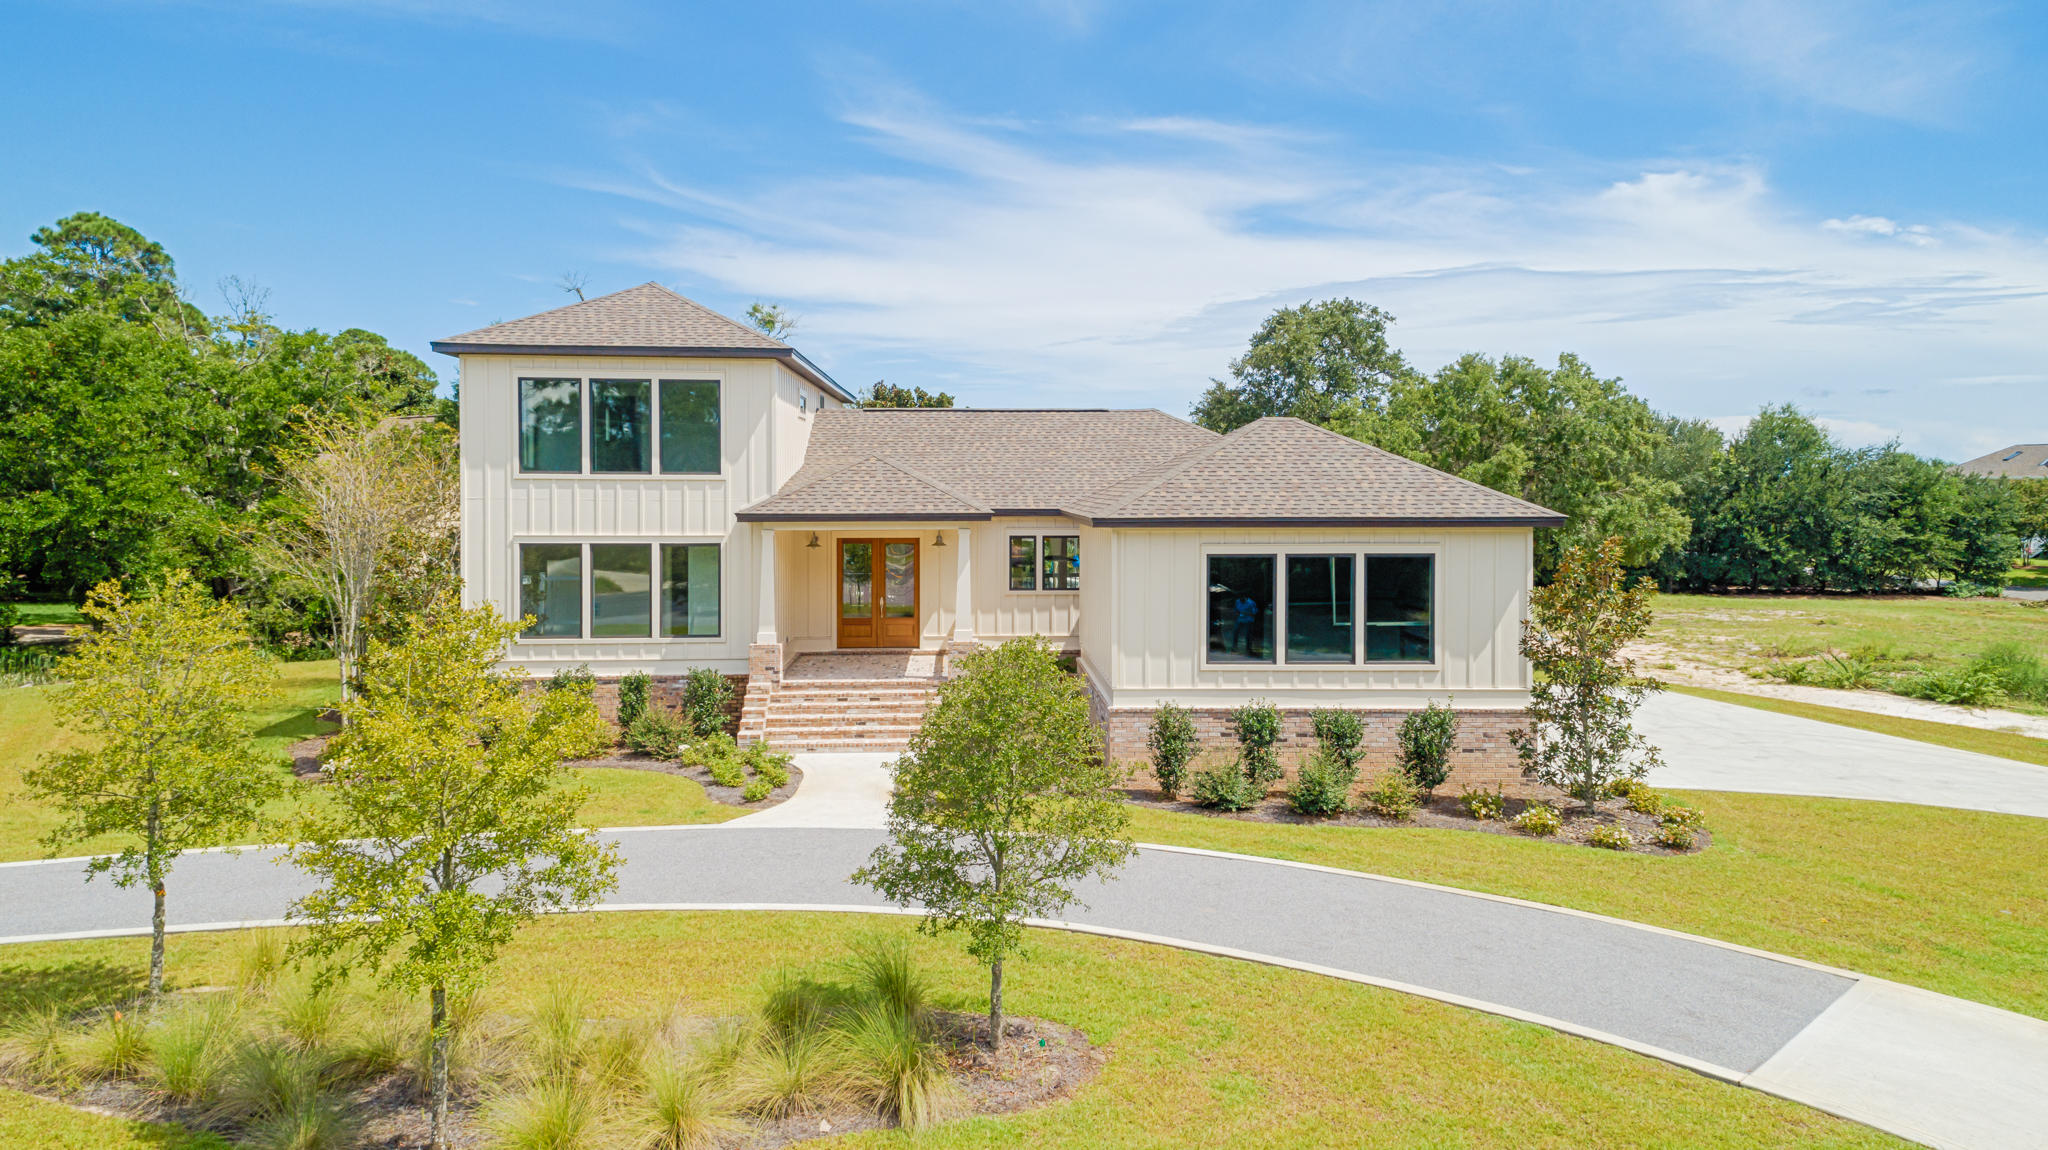 Photo of home for sale at 4721 Soule, Gulf Breeze FL